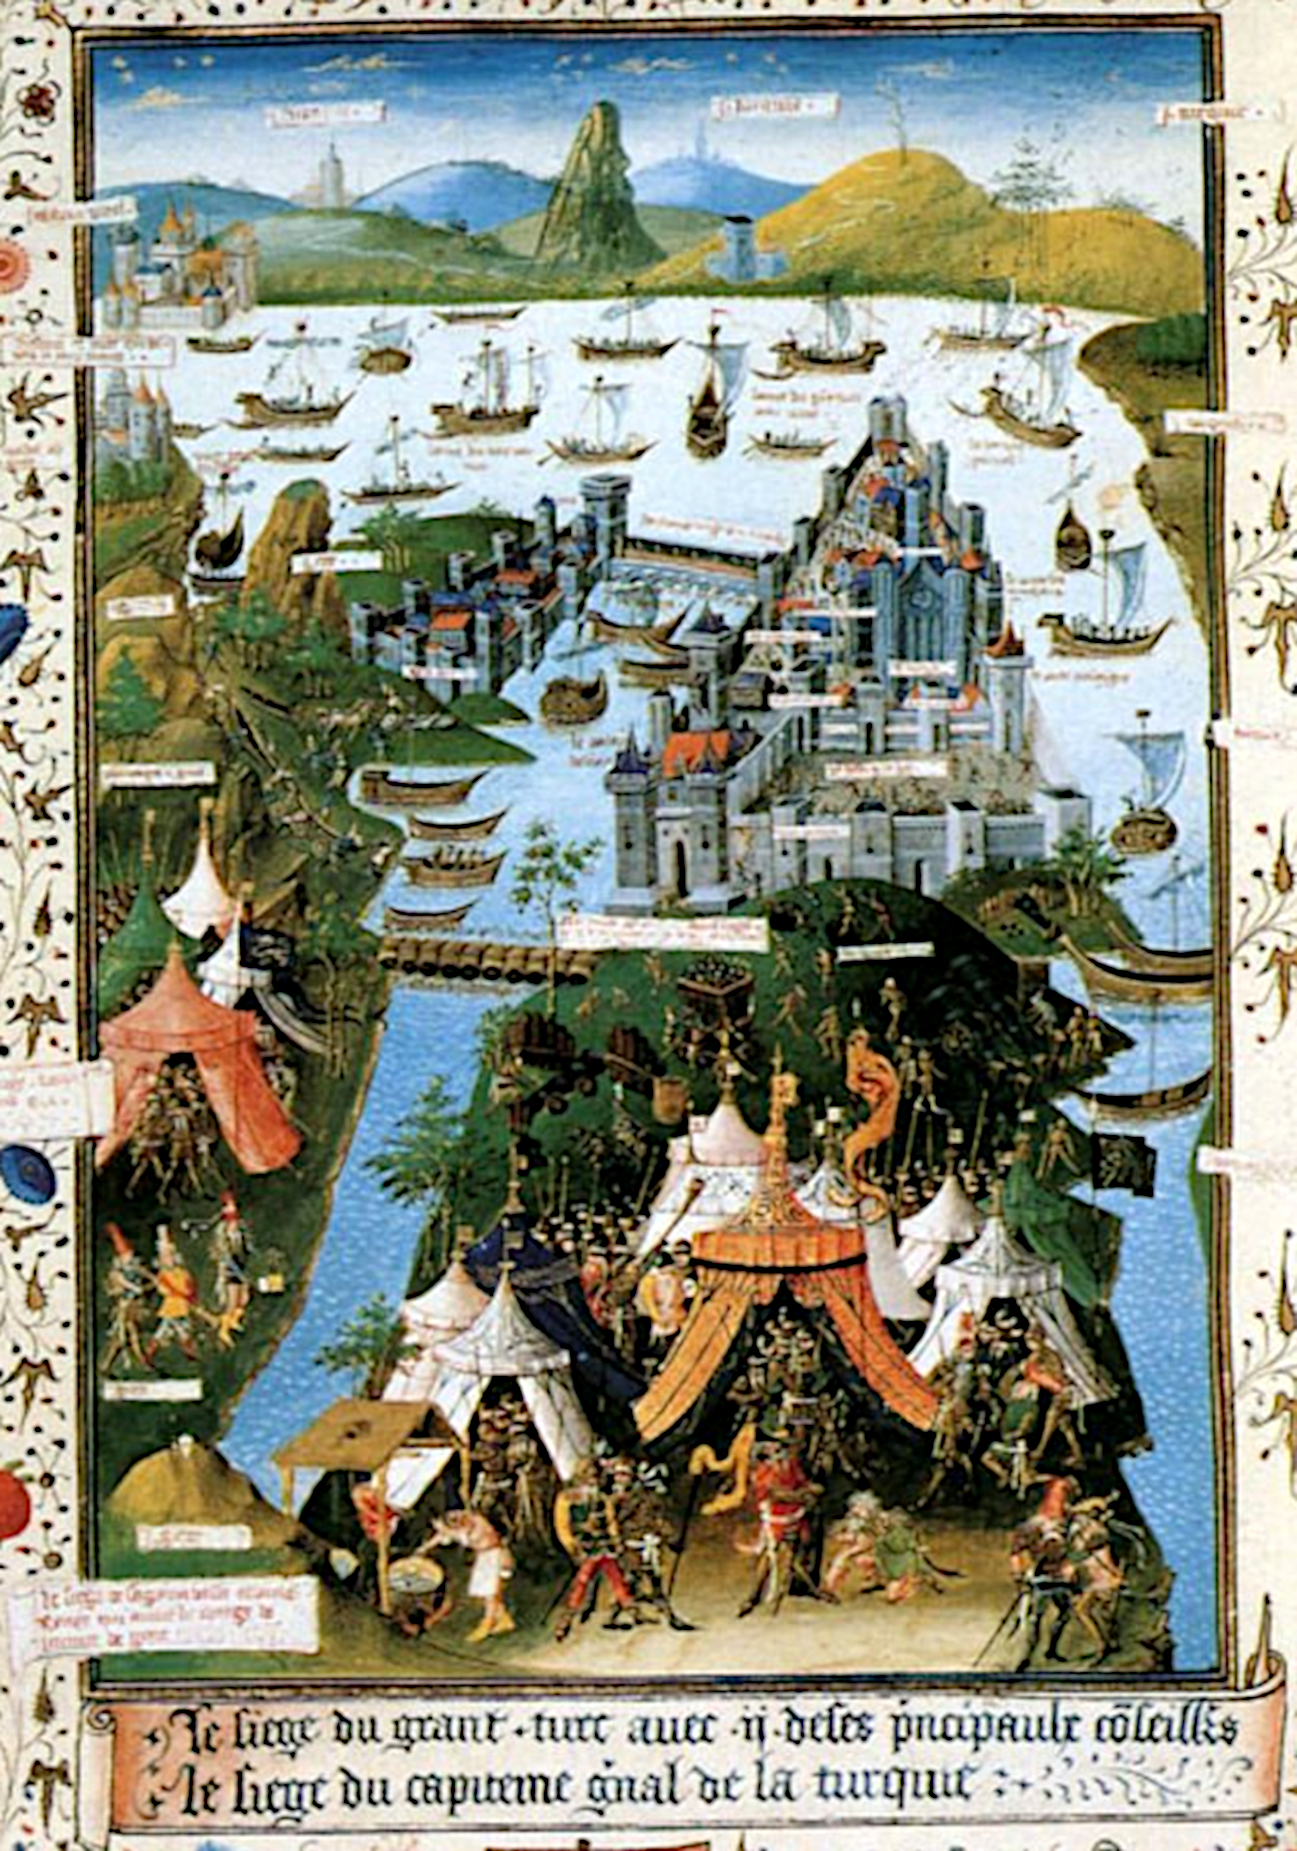 http://upload.wikimedia.org/wikipedia/commons/d/d5/Siege_of_Constantinople_BnF_MS_Fr_9087.jpg